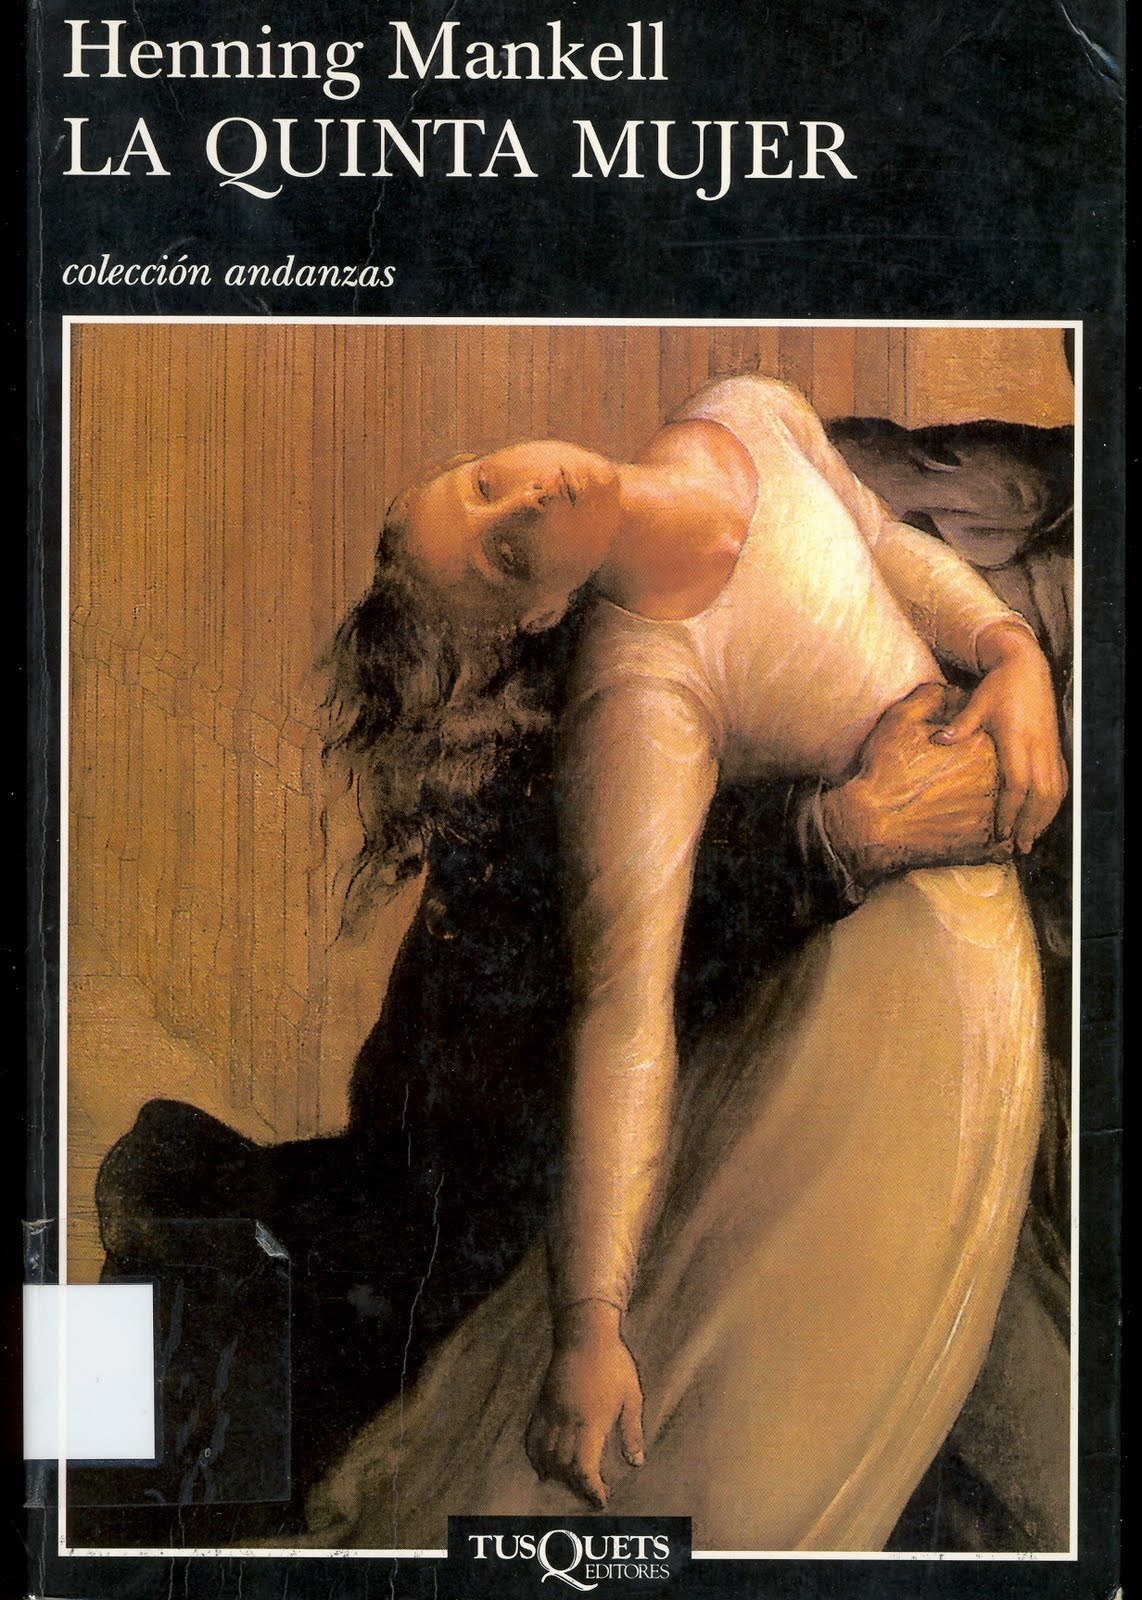 La quinta mujer, Henning Mankell | Blogs Clubs Lectura das ...